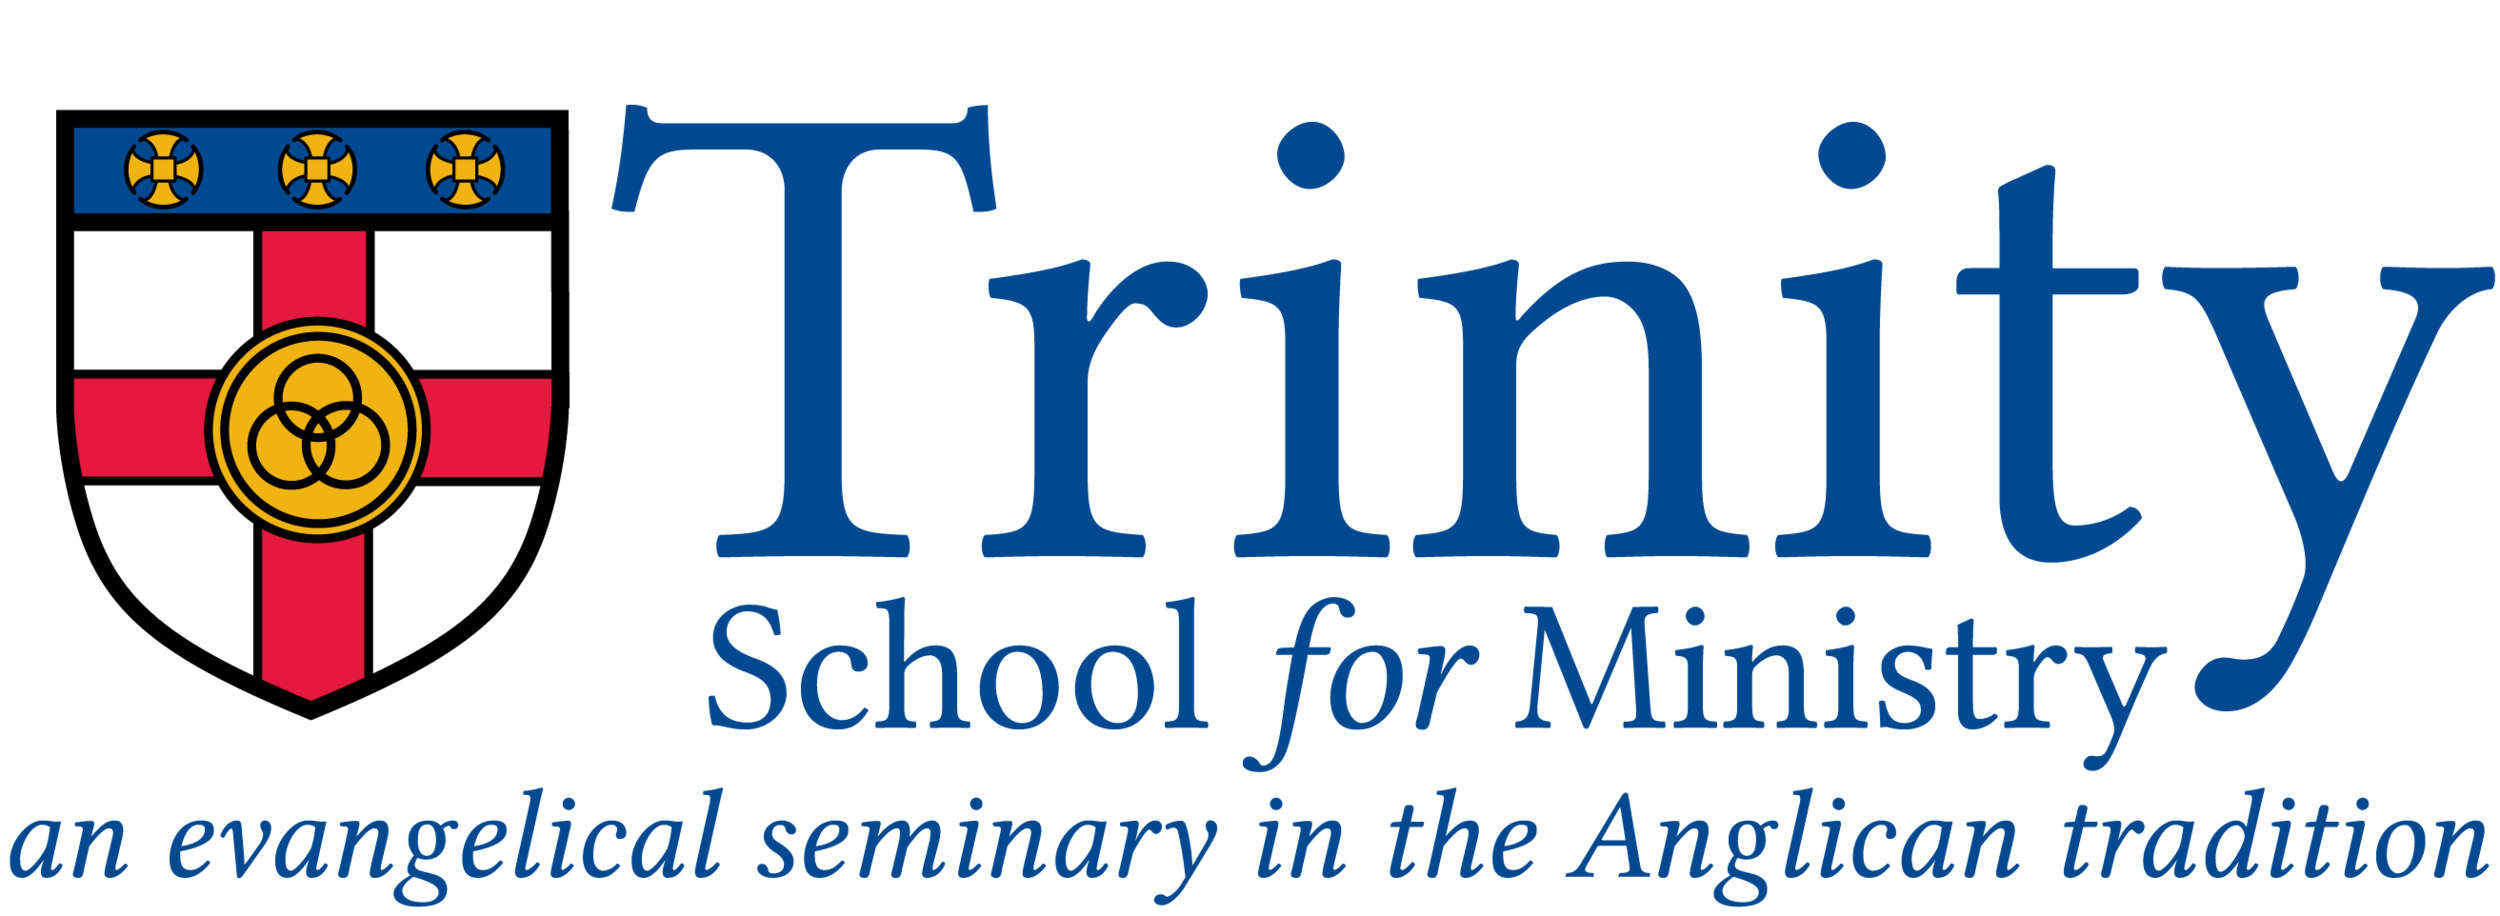 Trinity school of ministry.png